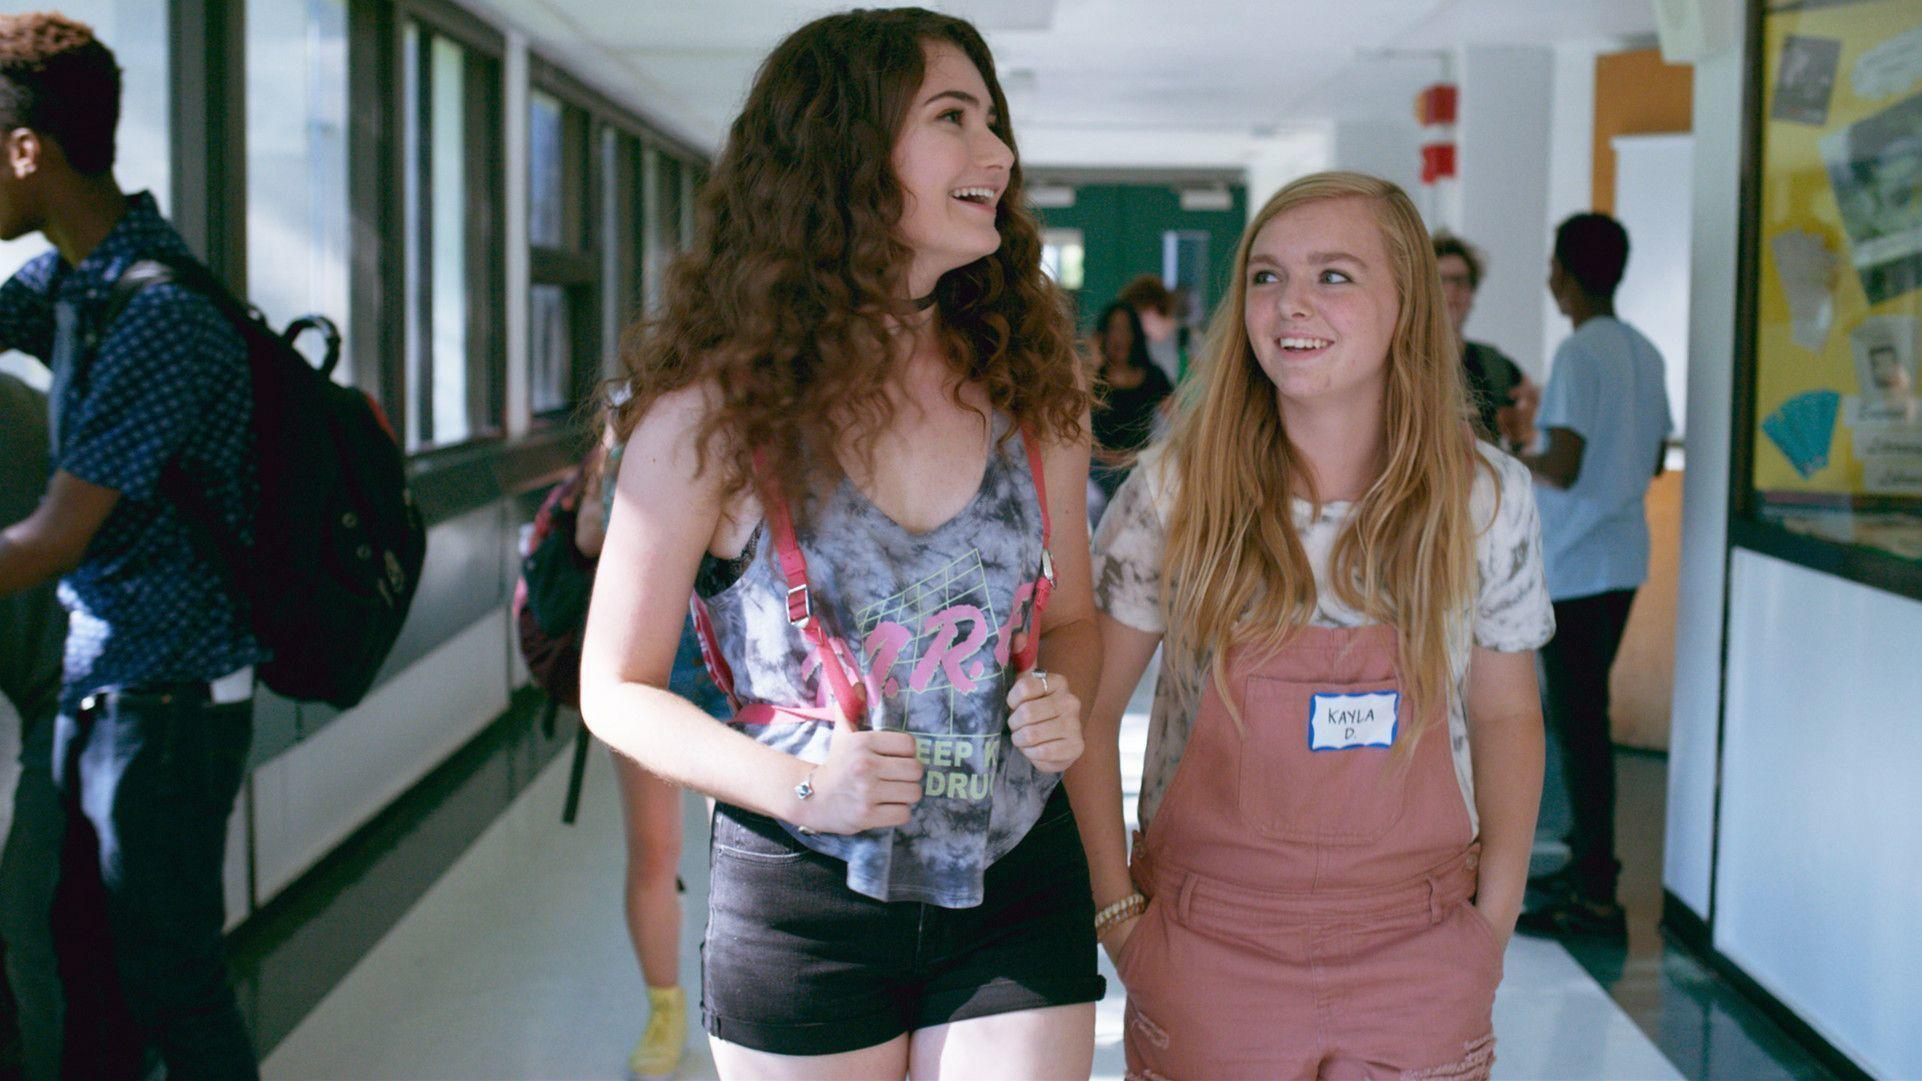 ct-perspec-eighth-grade-movie-ratings-mpaa-0809-20180808.jpg